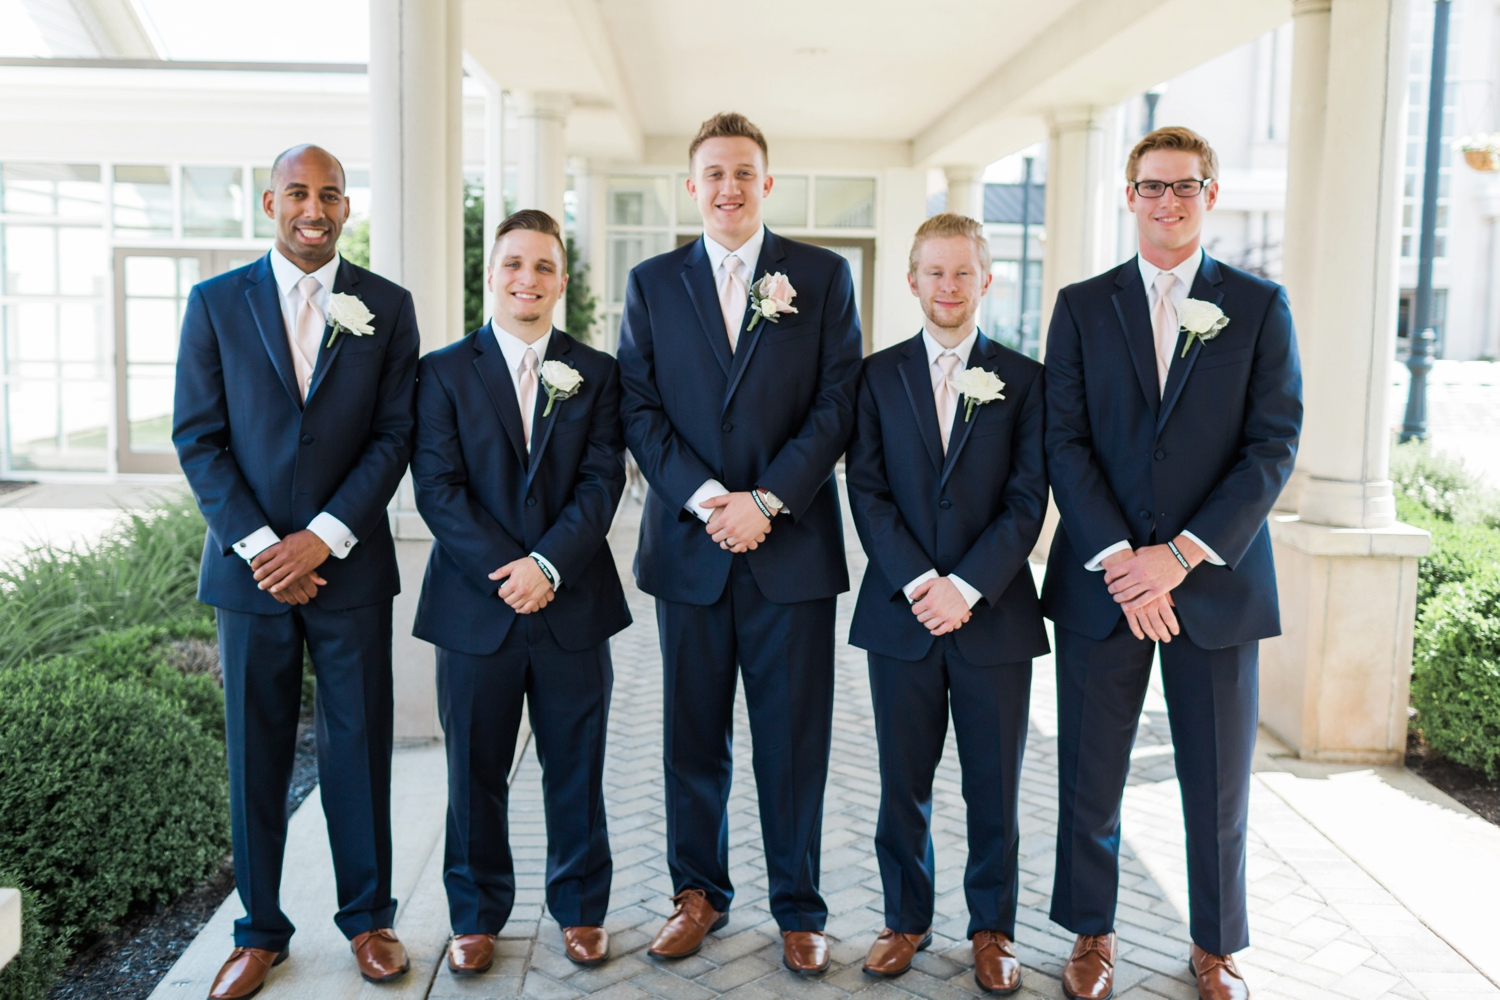 Community_Life_Center_Indianapolis_Indiana_Wedding_Photographer_Chloe_Luka_Photography_6917.jpg